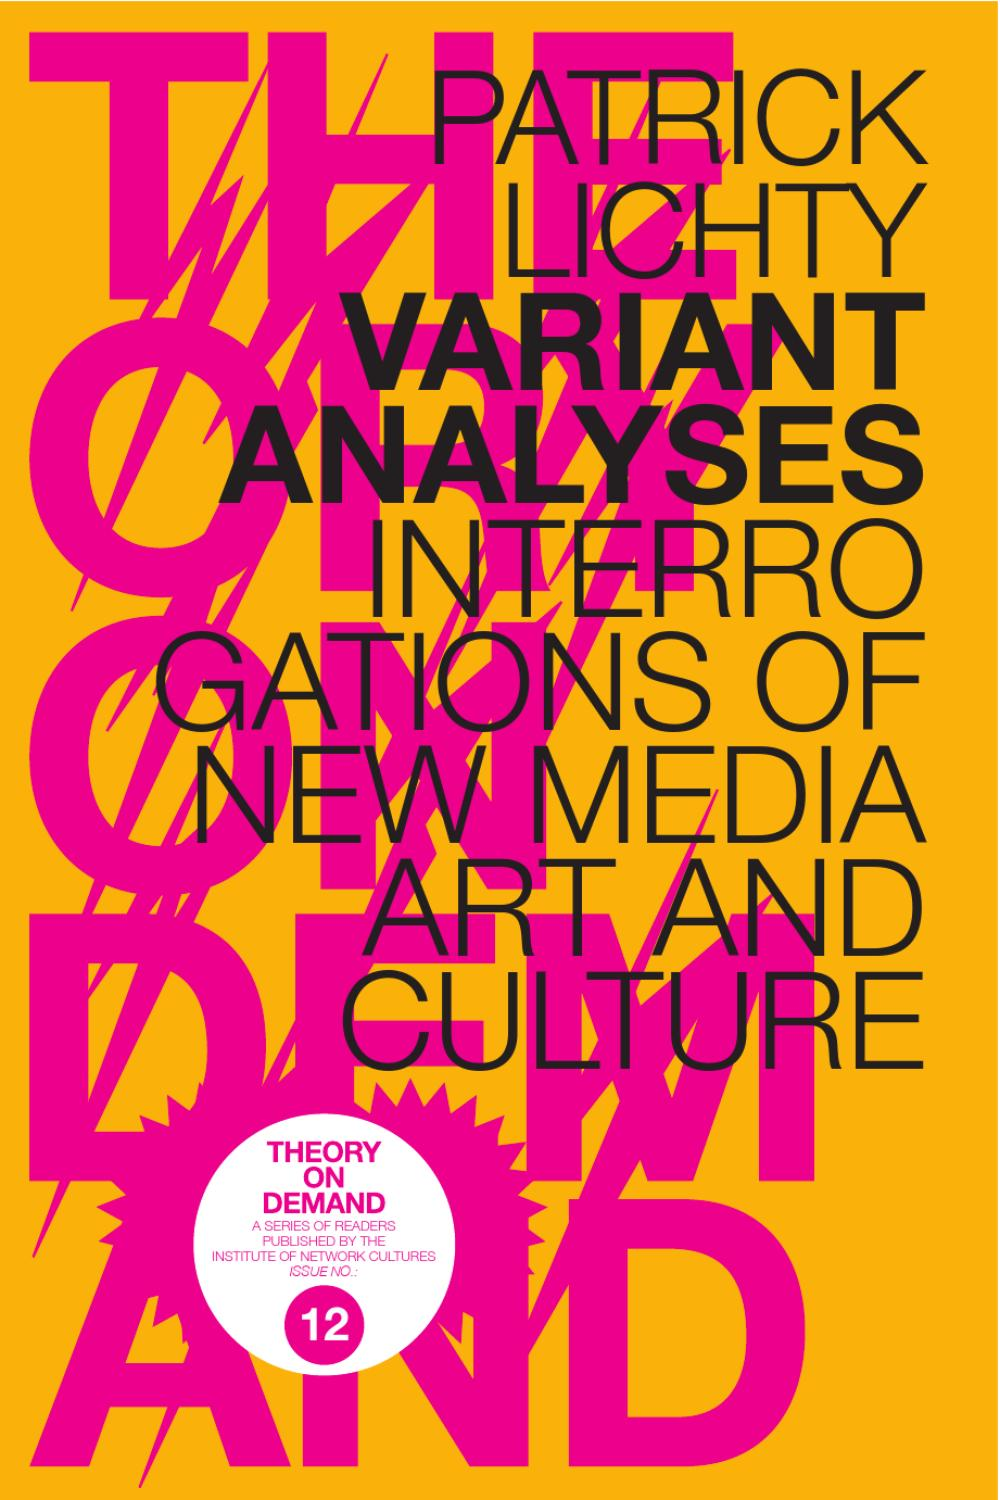 Variant Analyses Interrogations Of New Media Art And Culture By Turn Signal Switch Wiring Diagram Http Technoanswersblogspotcom Institute Network Cultures Issuu